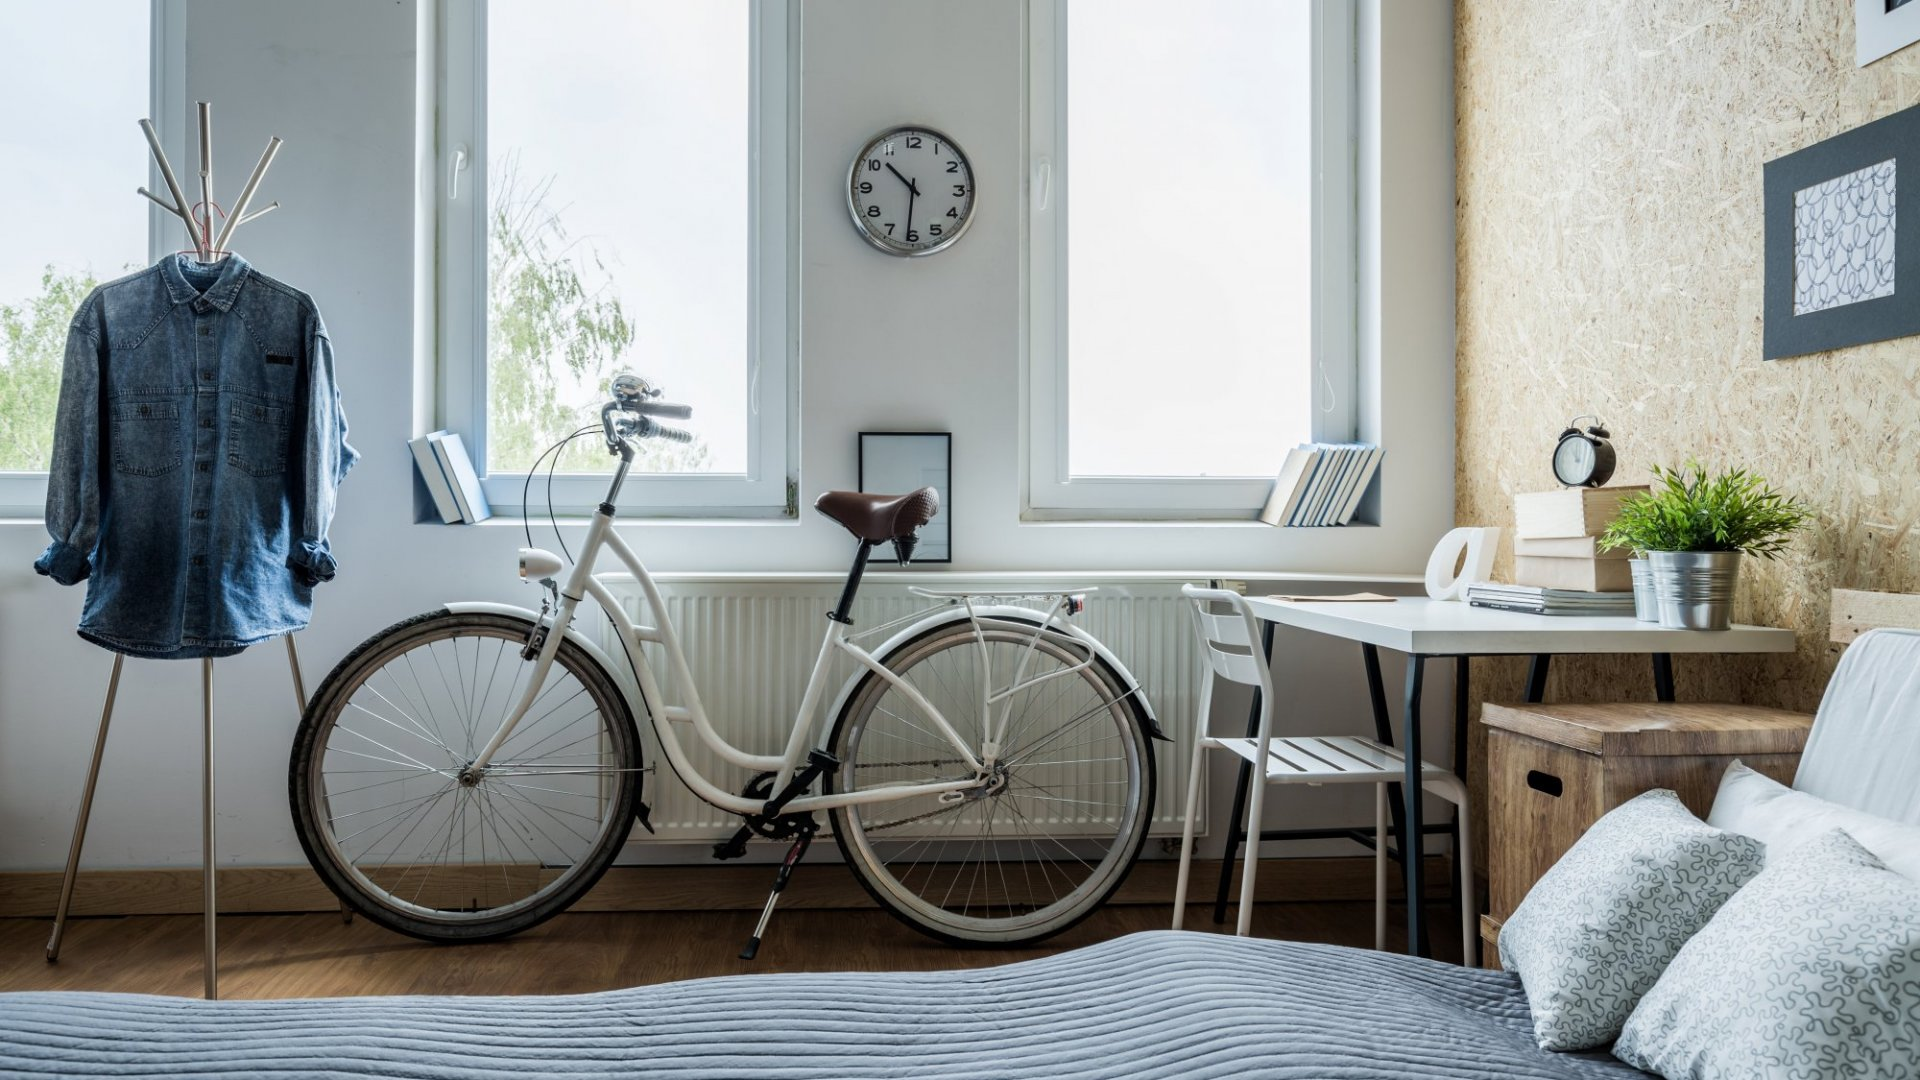 How to Squeeze a Home Office Into a Small Space: 7 Tips